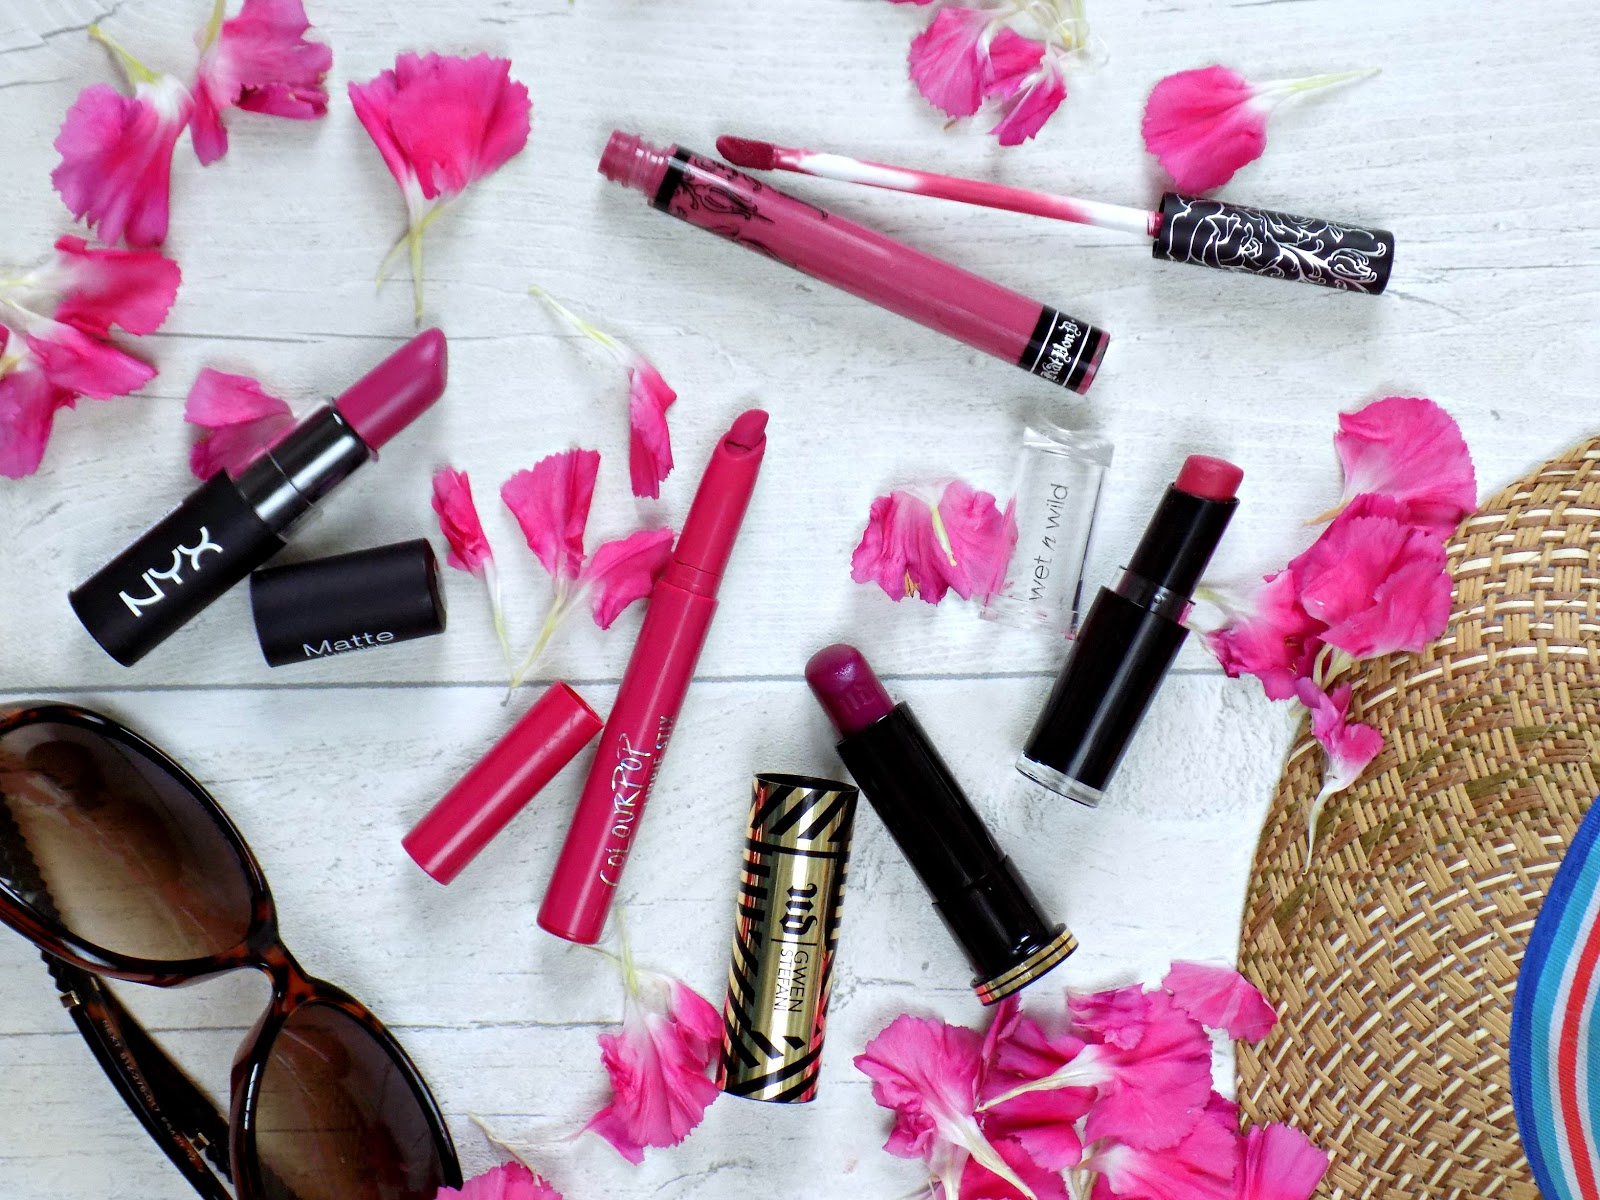 Summer hot pink lipsticks